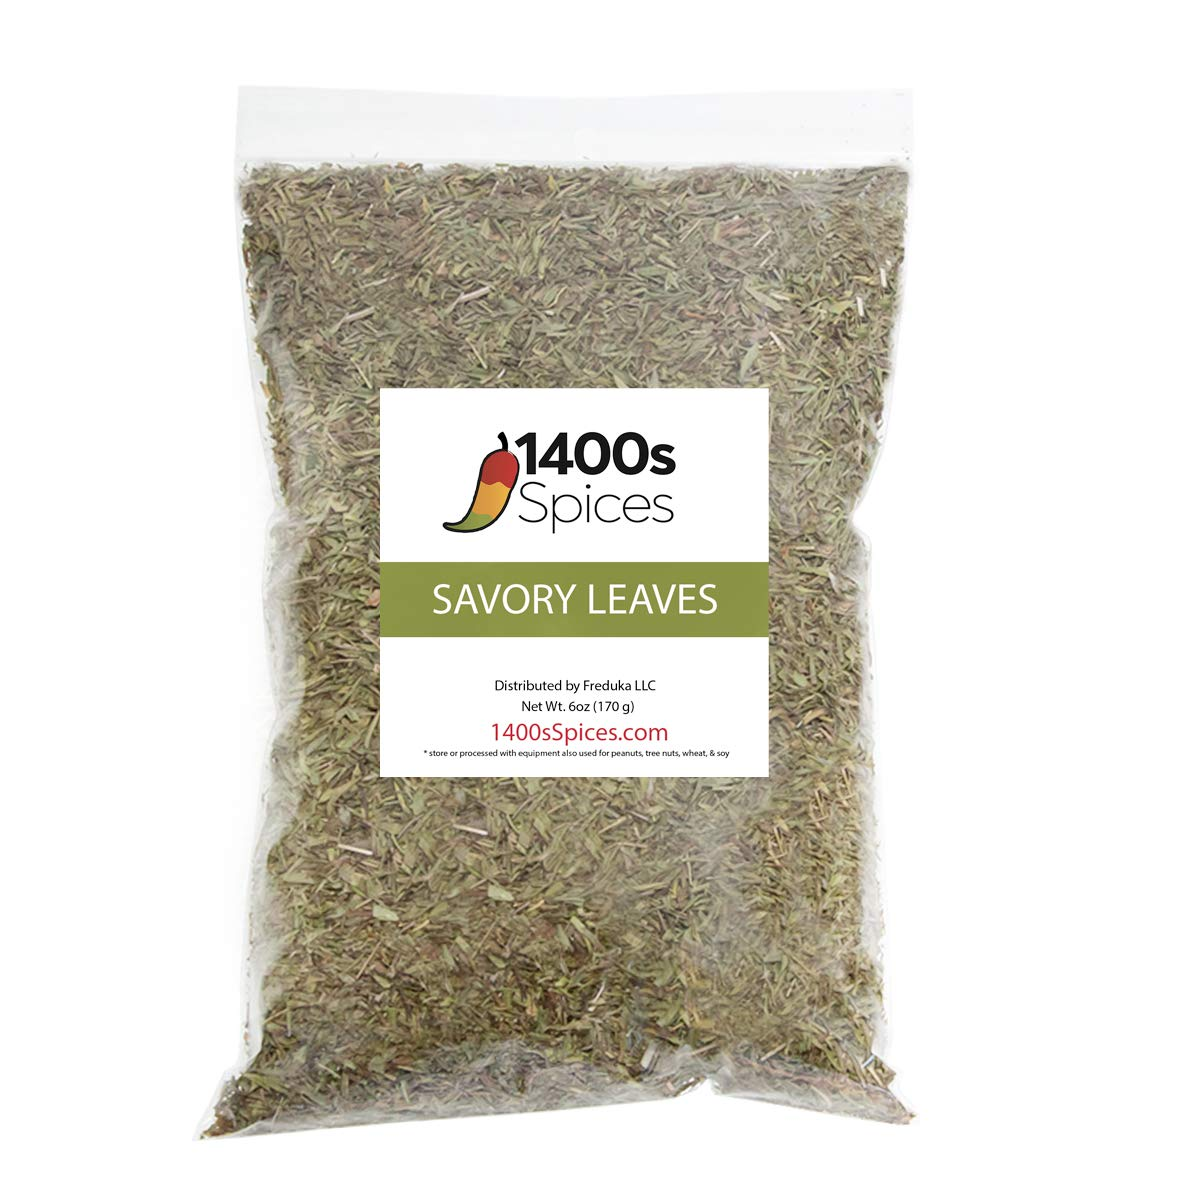 6oz Cut Savory Spice Leaves. Ideal Limited price Meat V shipfree Soups Salads and for